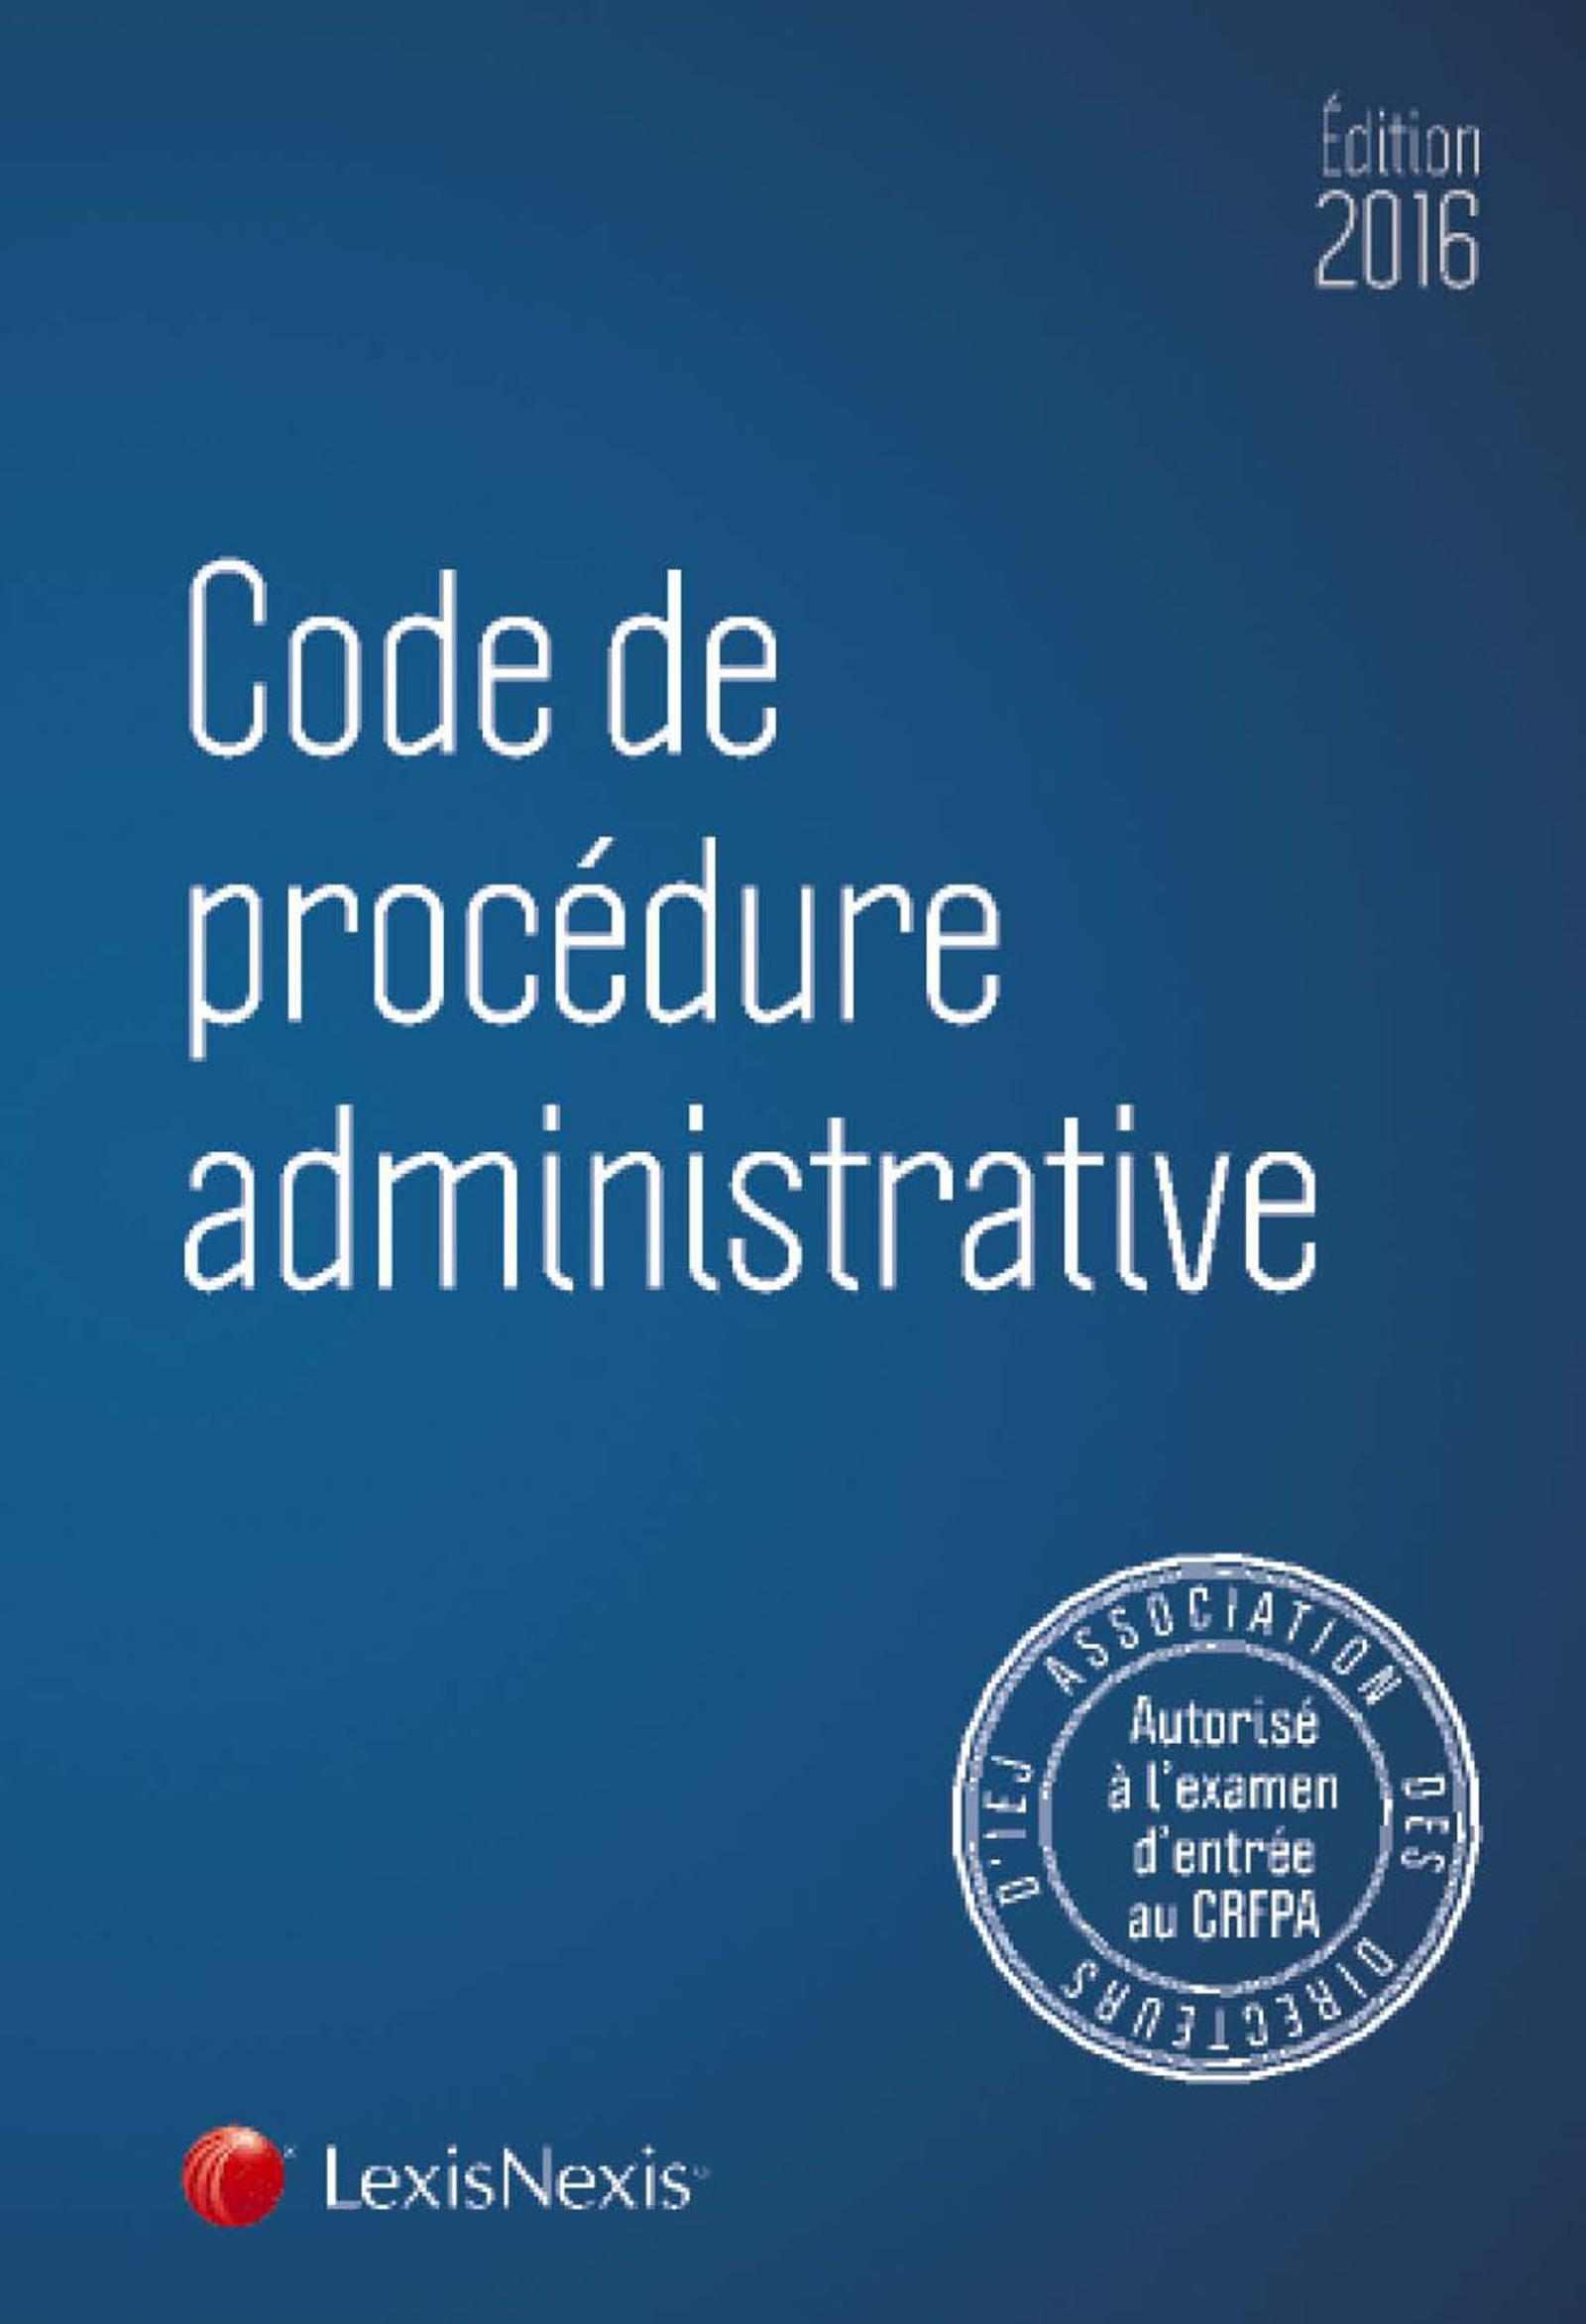 CODE DE PROCEDURE ADMINISTRATIVE 2016